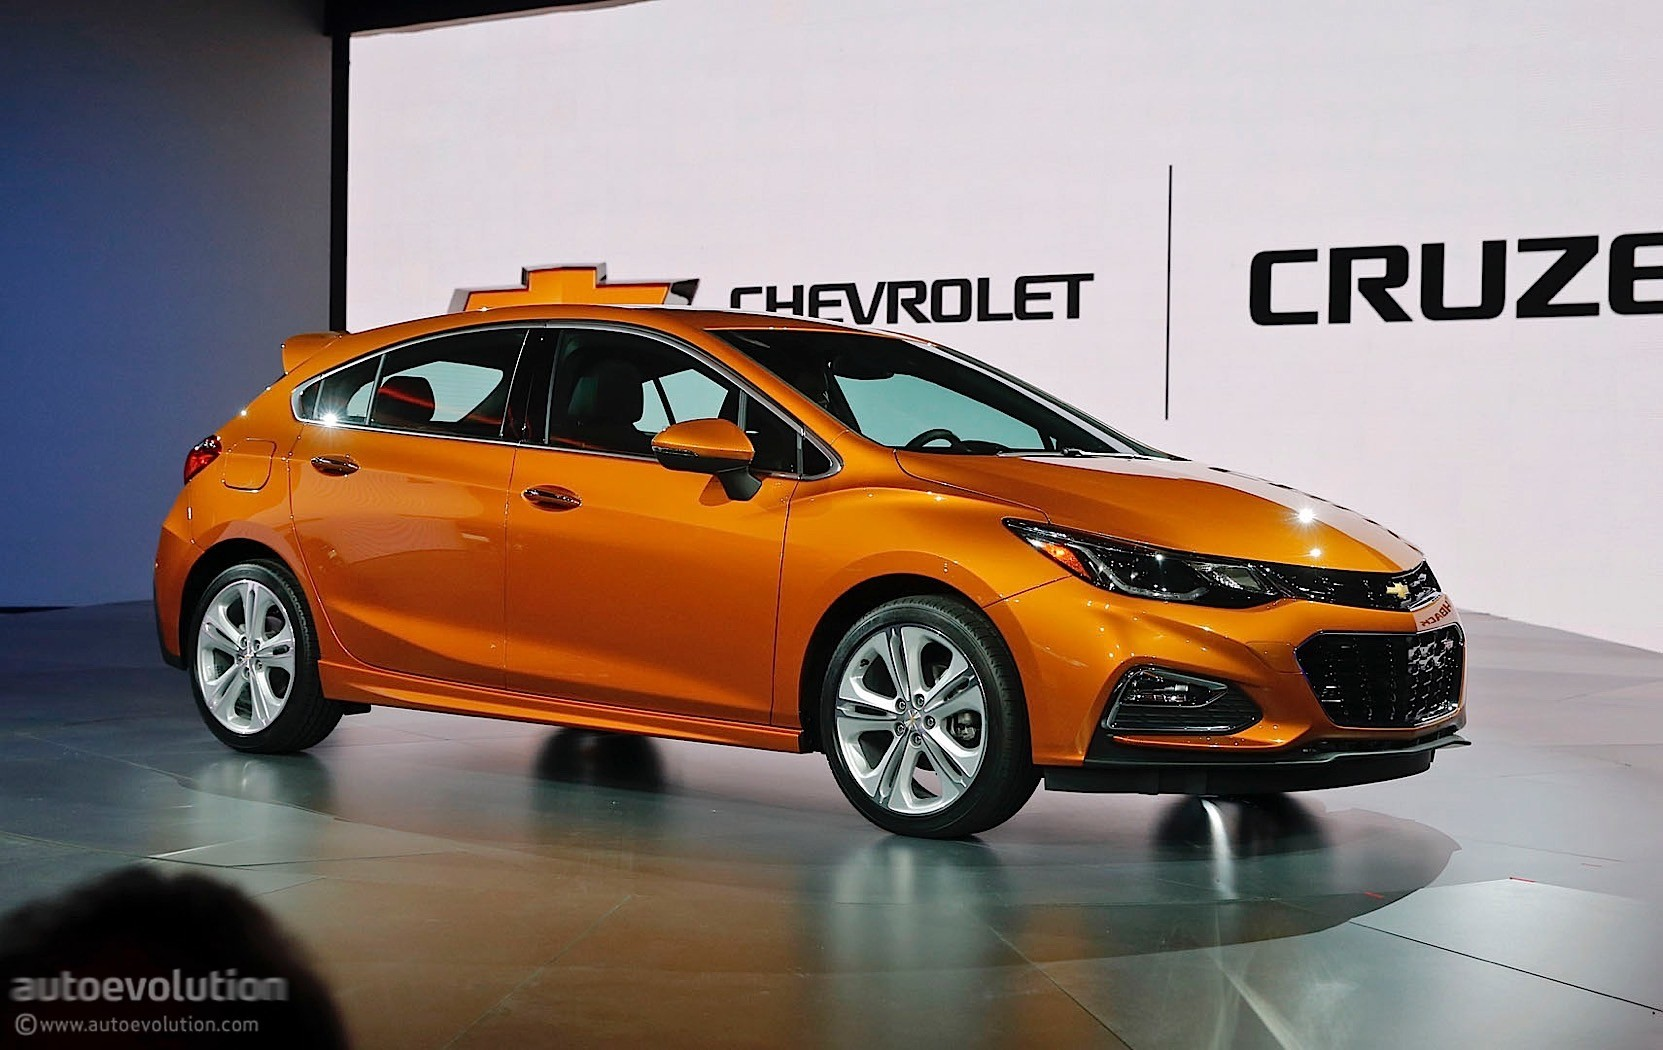 2017 chevrolet cruze hatchback priced from 22 190 autoevolution. Black Bedroom Furniture Sets. Home Design Ideas